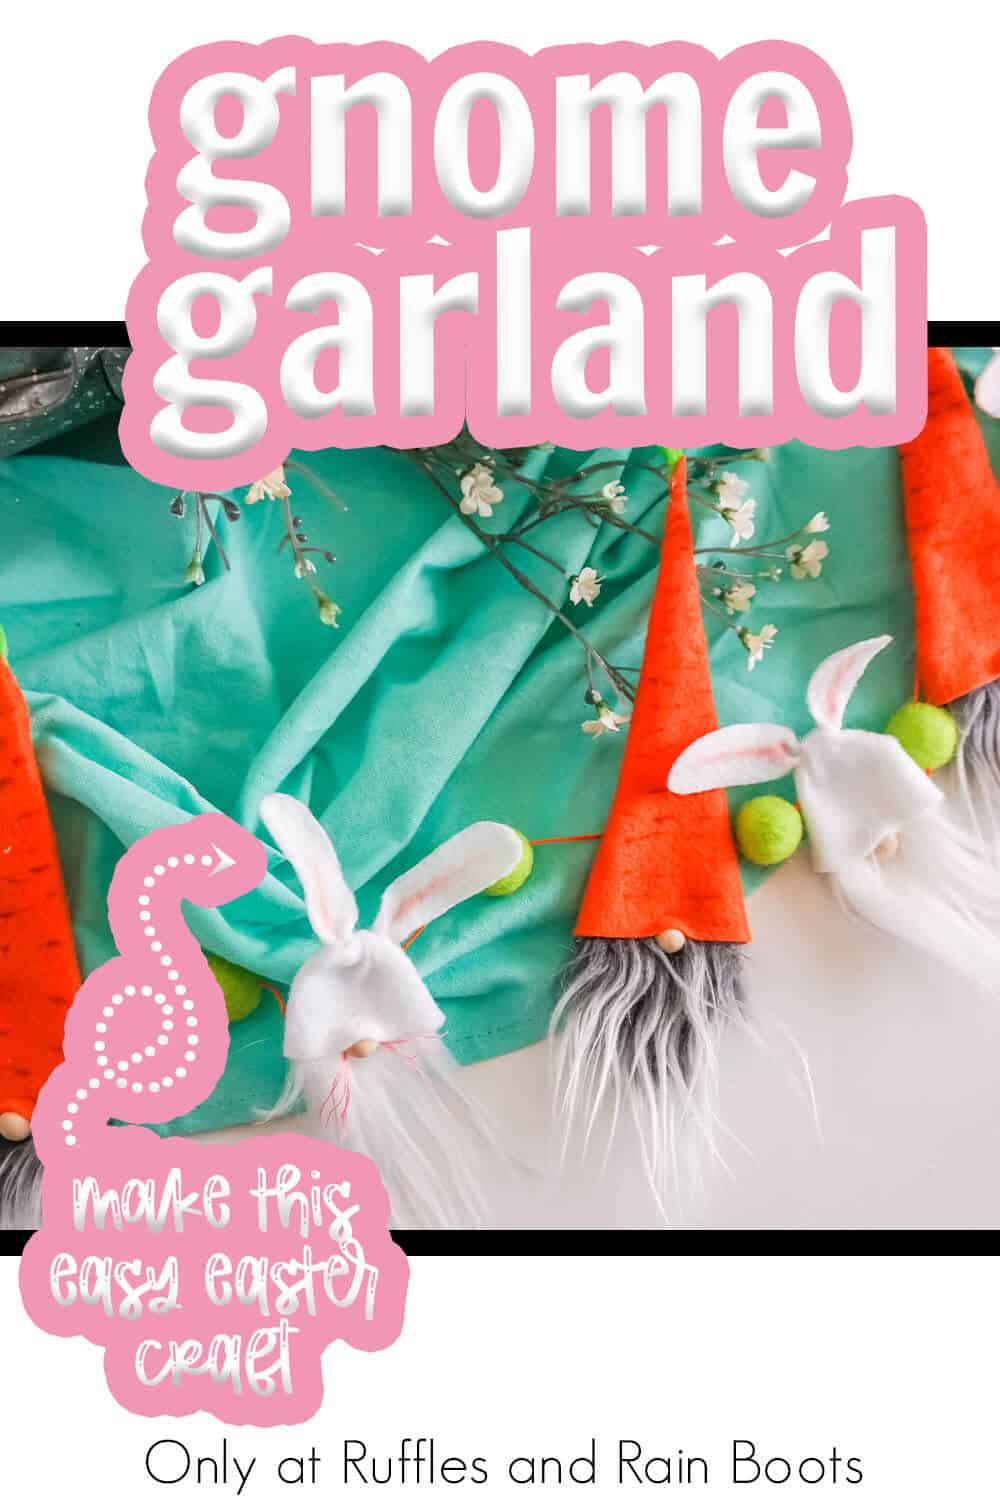 gnome pattern to make an easter farmhouse garland with text which reads gnome garland make this easy easter craft